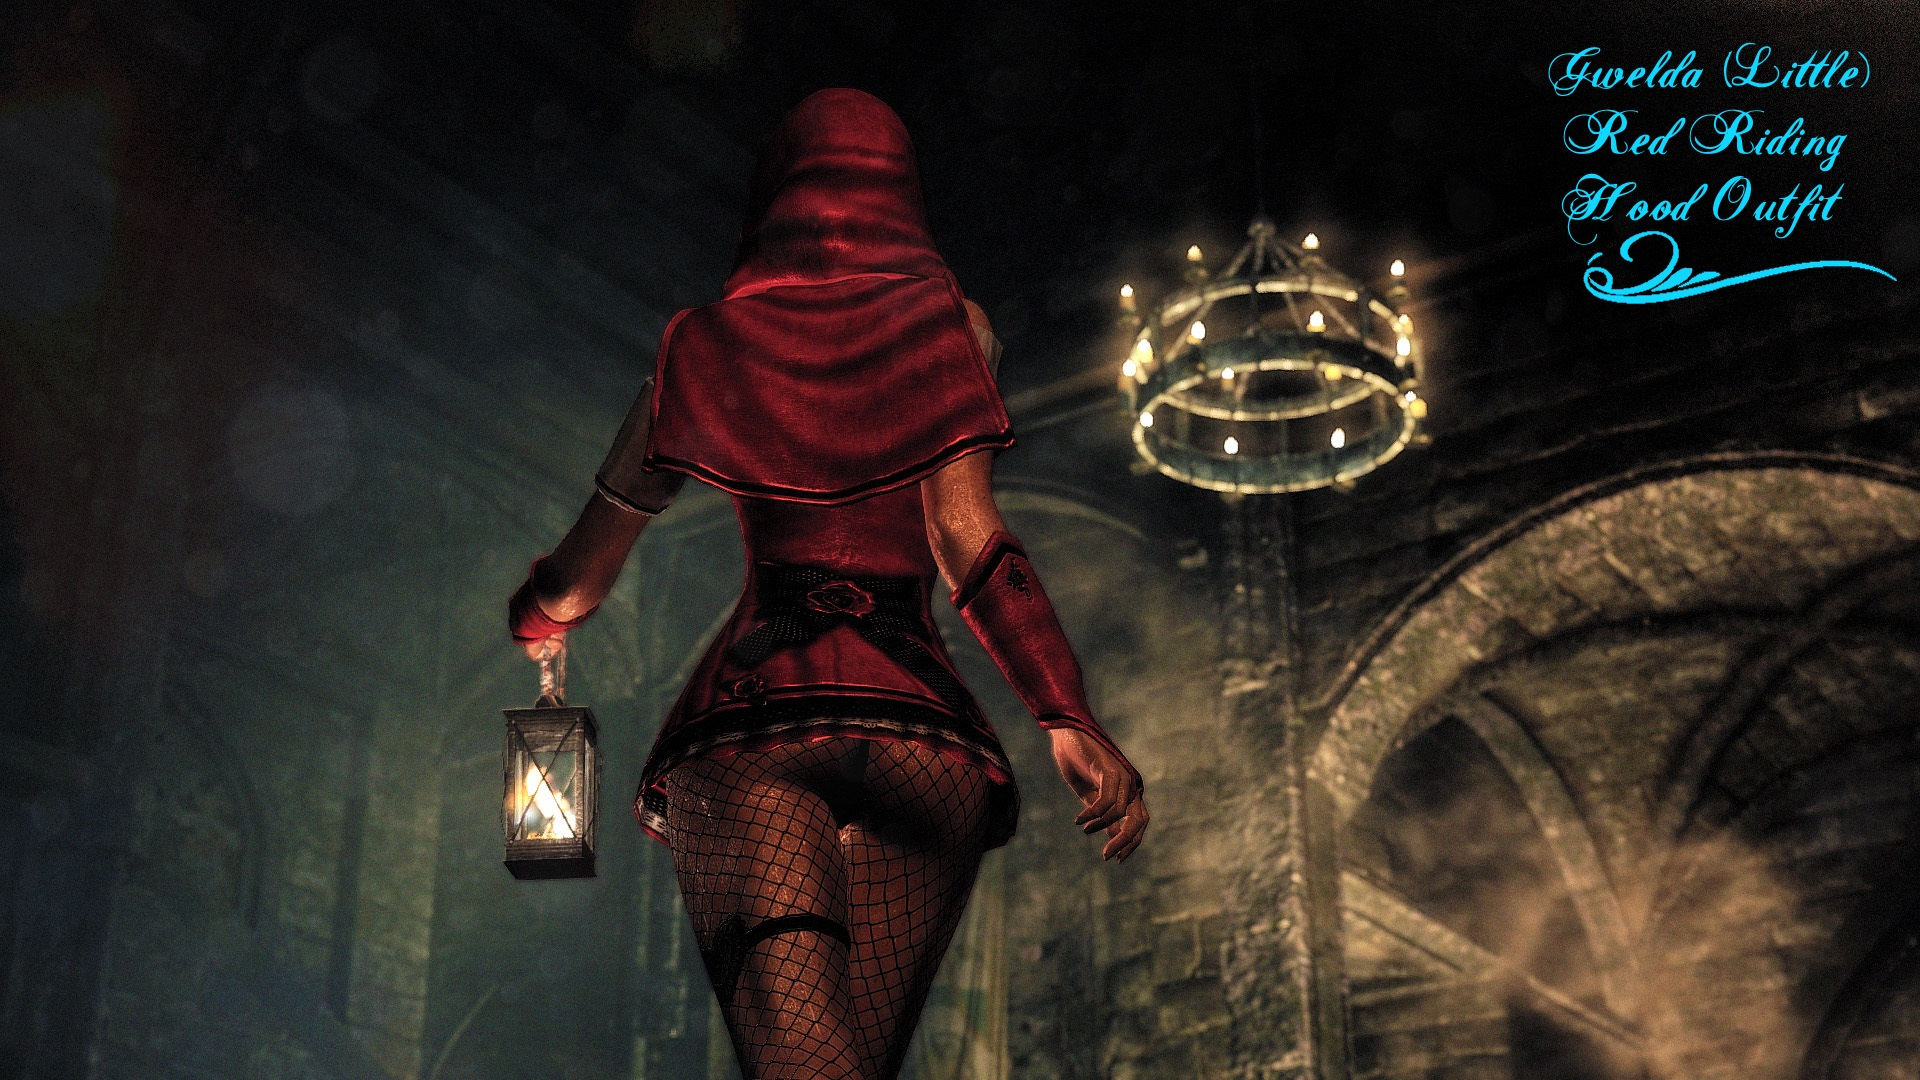 Gwelda_(Little)_Red_Riding_Hood_Outfit.jpg